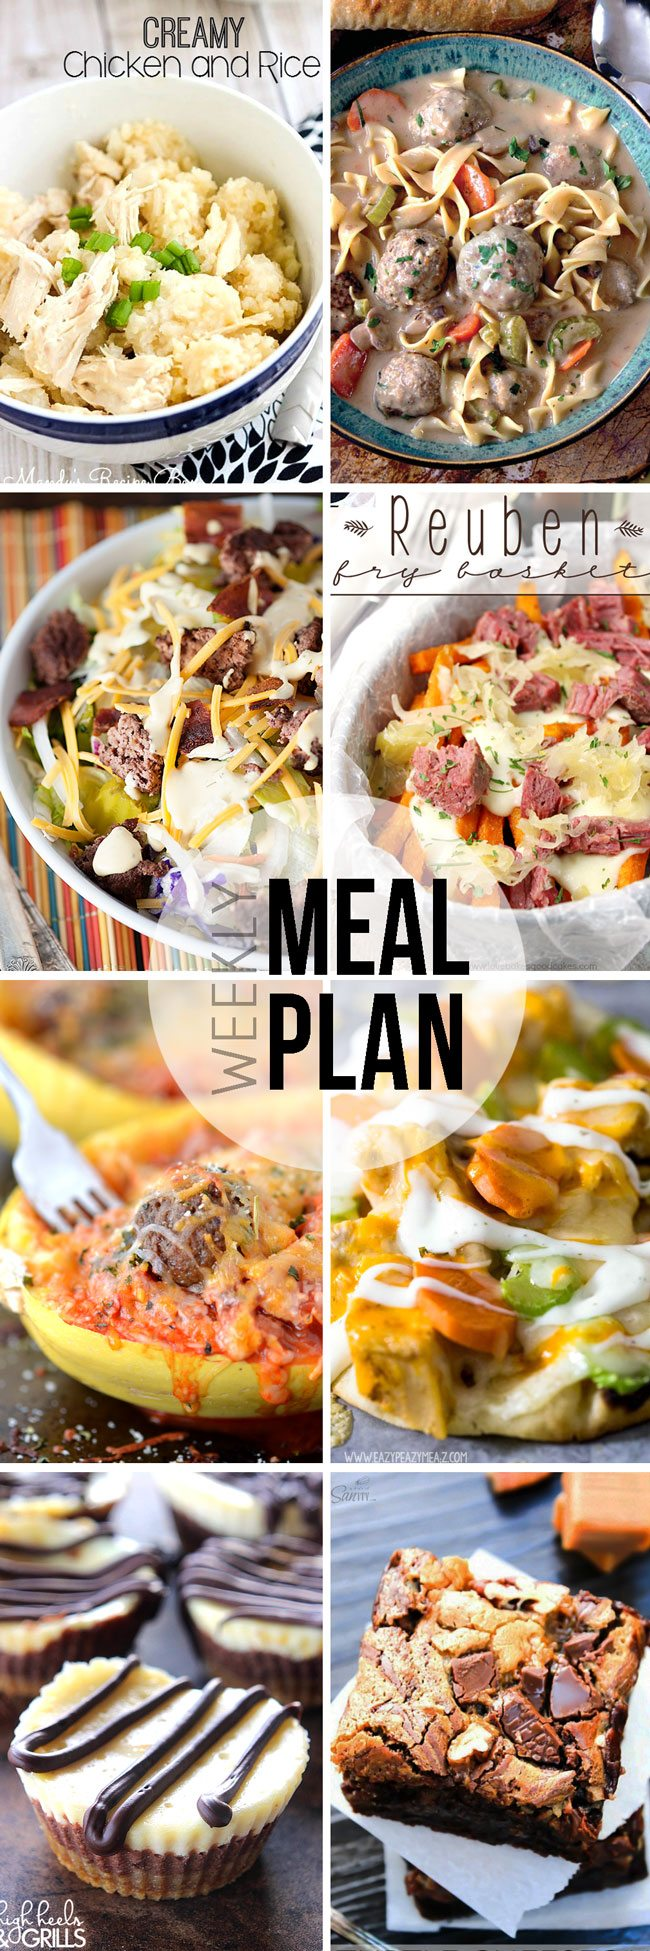 Meal-Plan---Pinterest-28